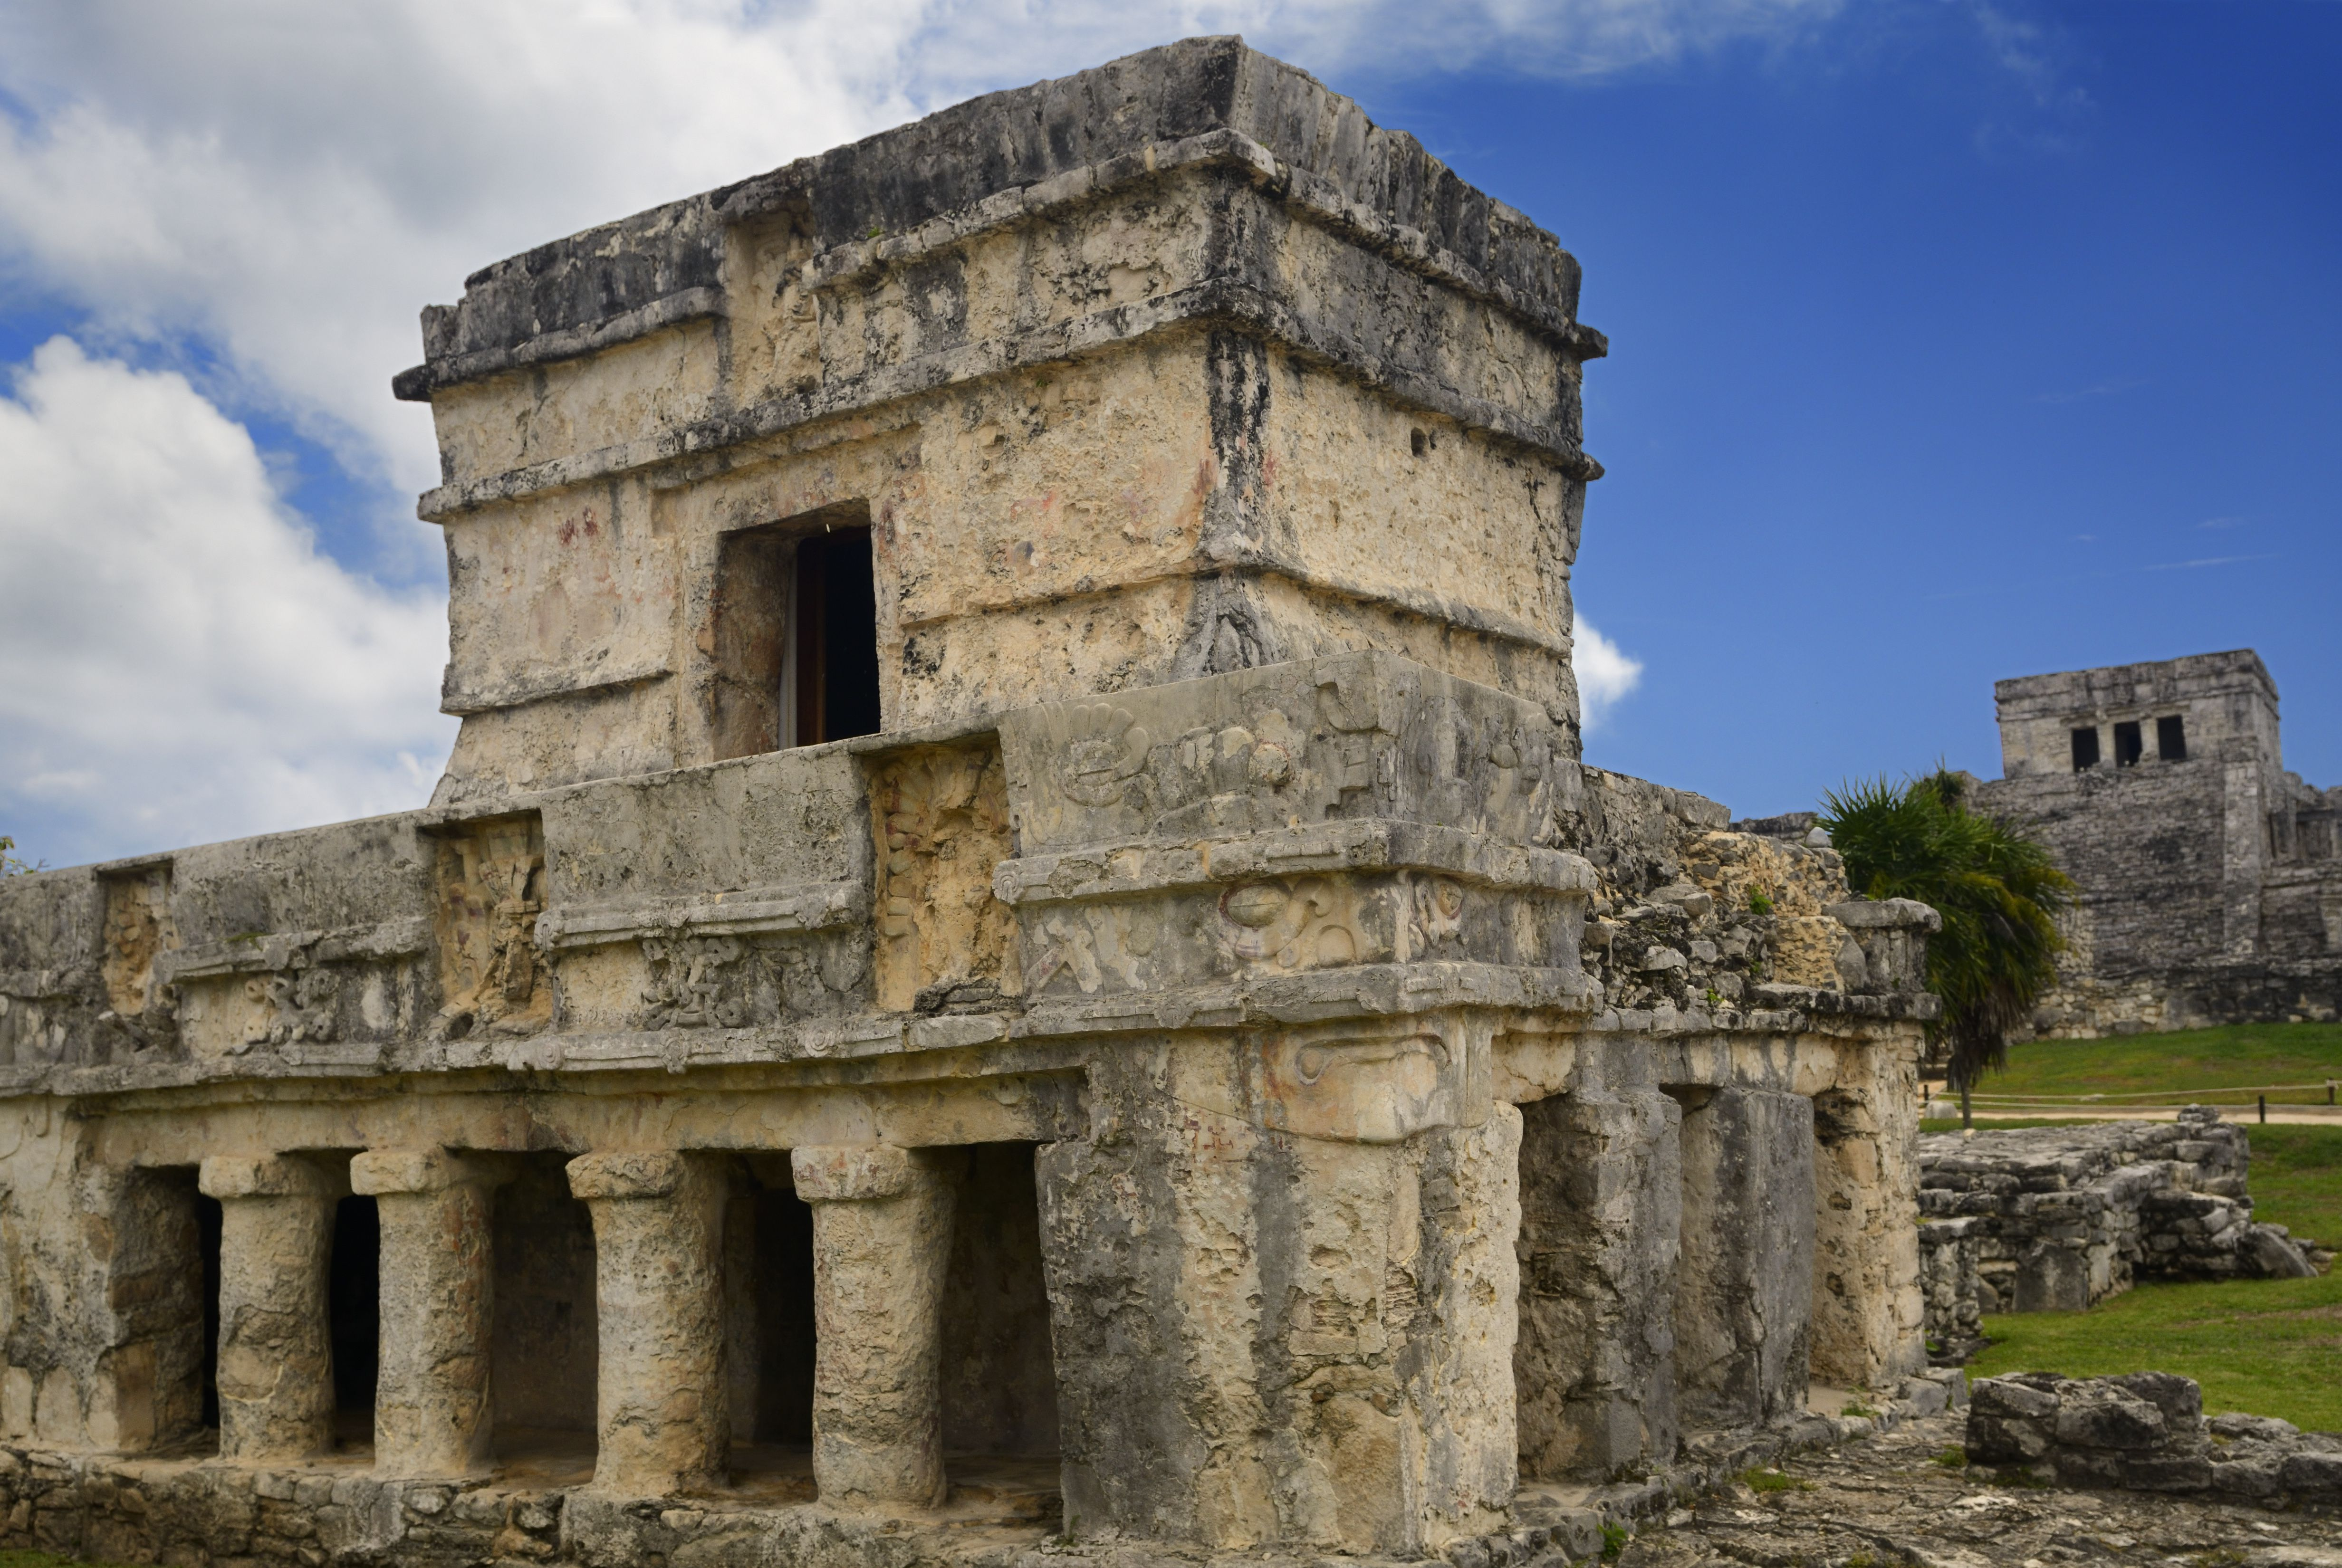 Temple of the Frescoes ruin with The Castle pyramid